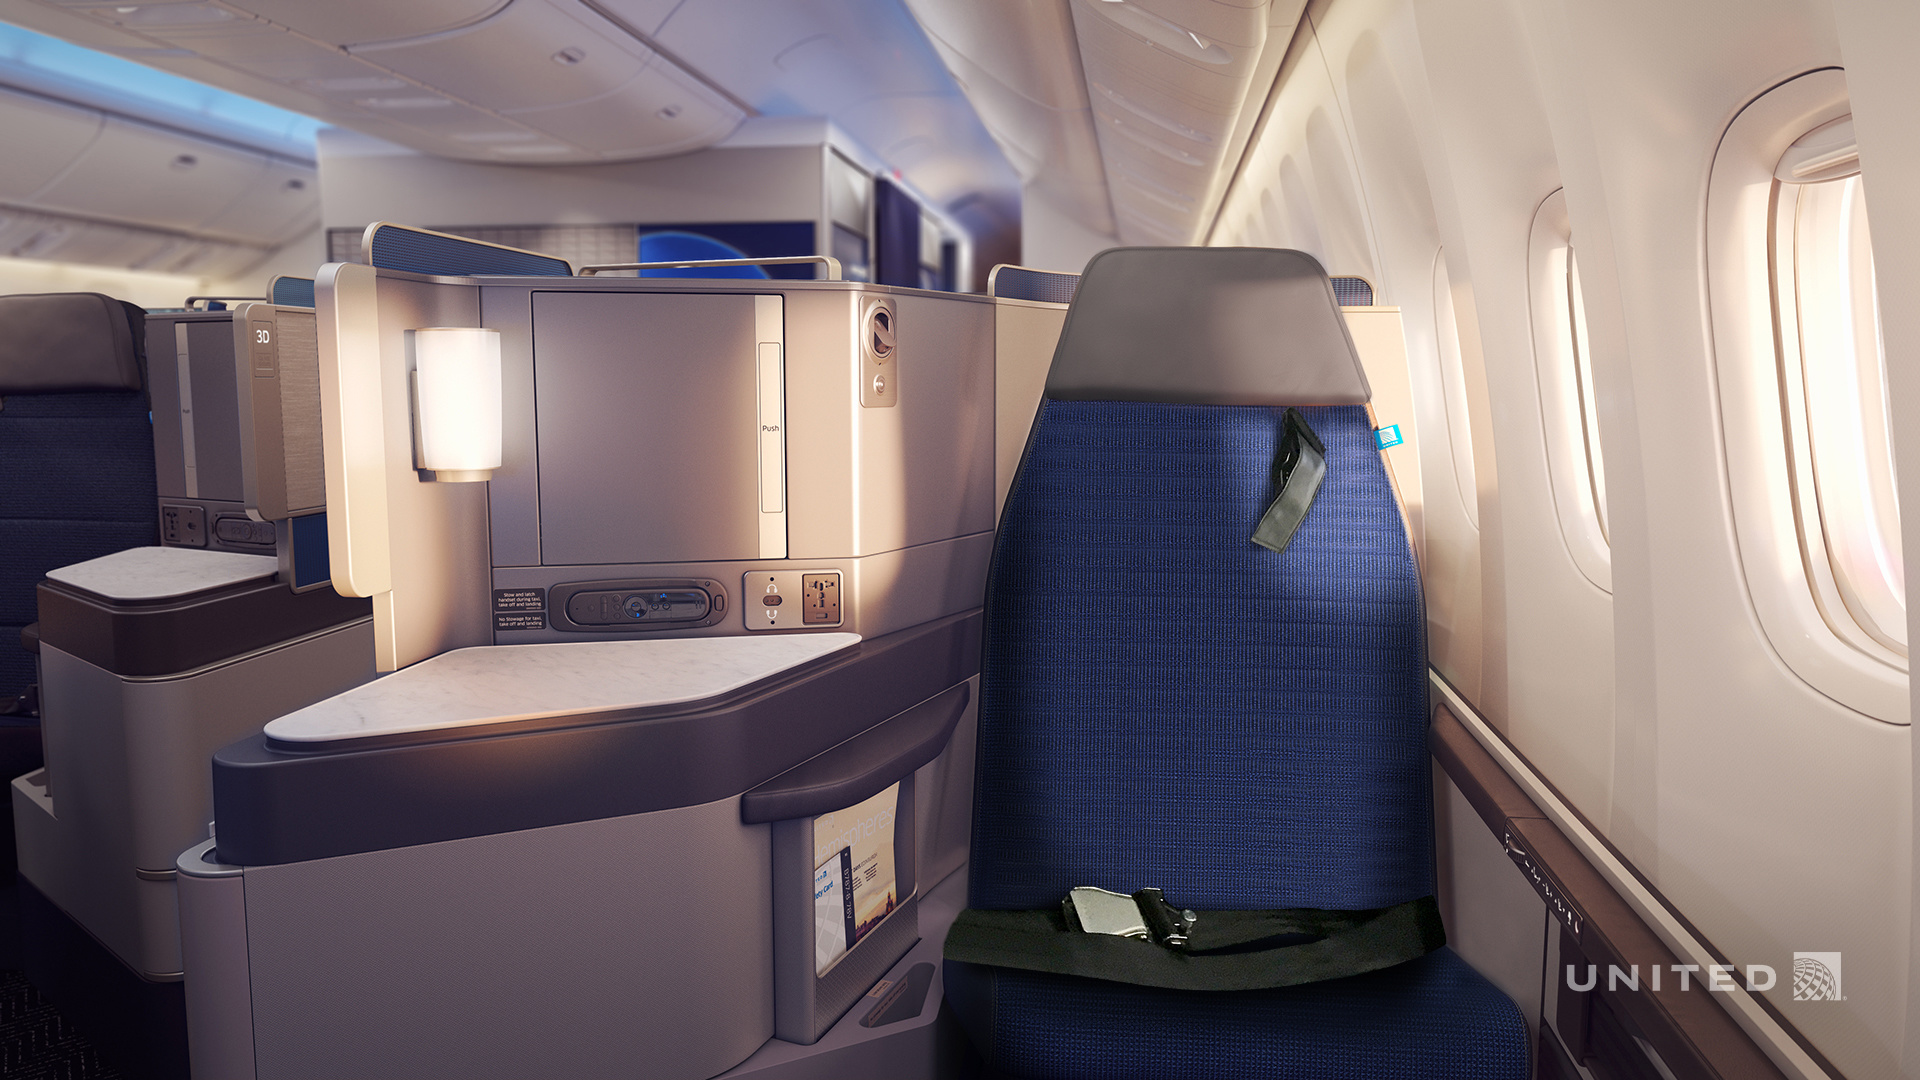 Business class airplane seat - United Airlines Polaris Business class